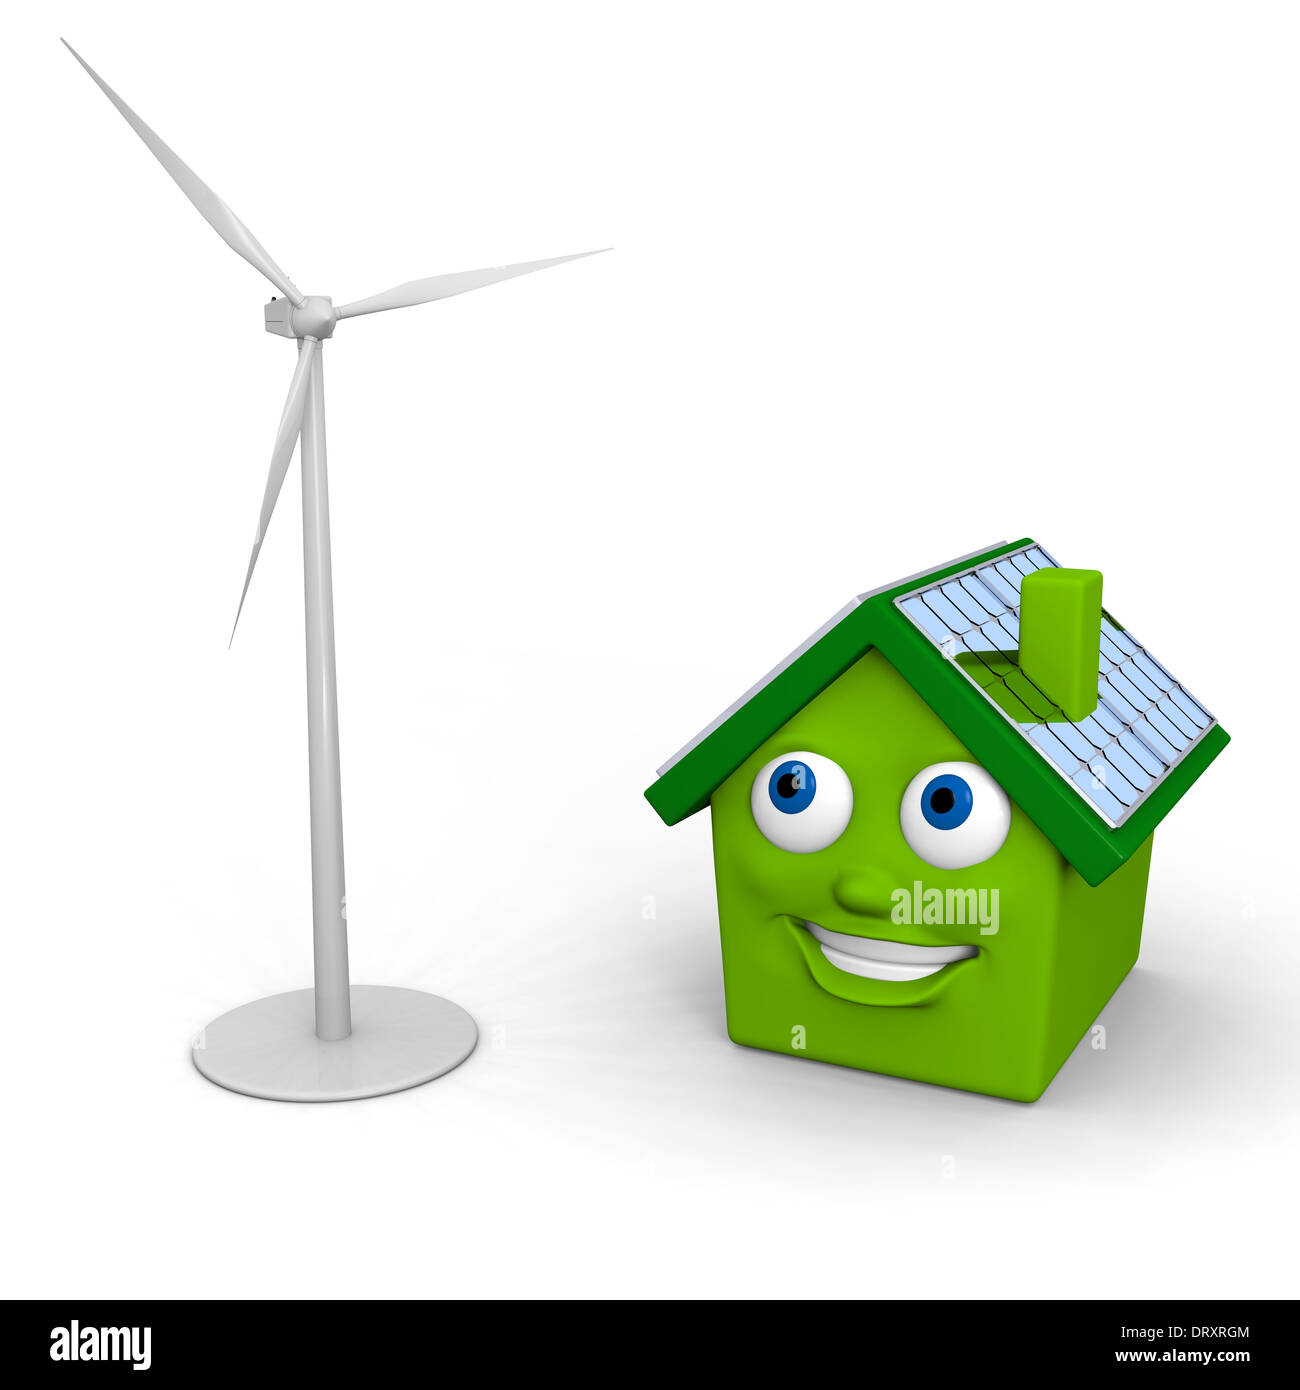 Happy little green house with solar panels on the roof with model of a wind turbine - Stock Image